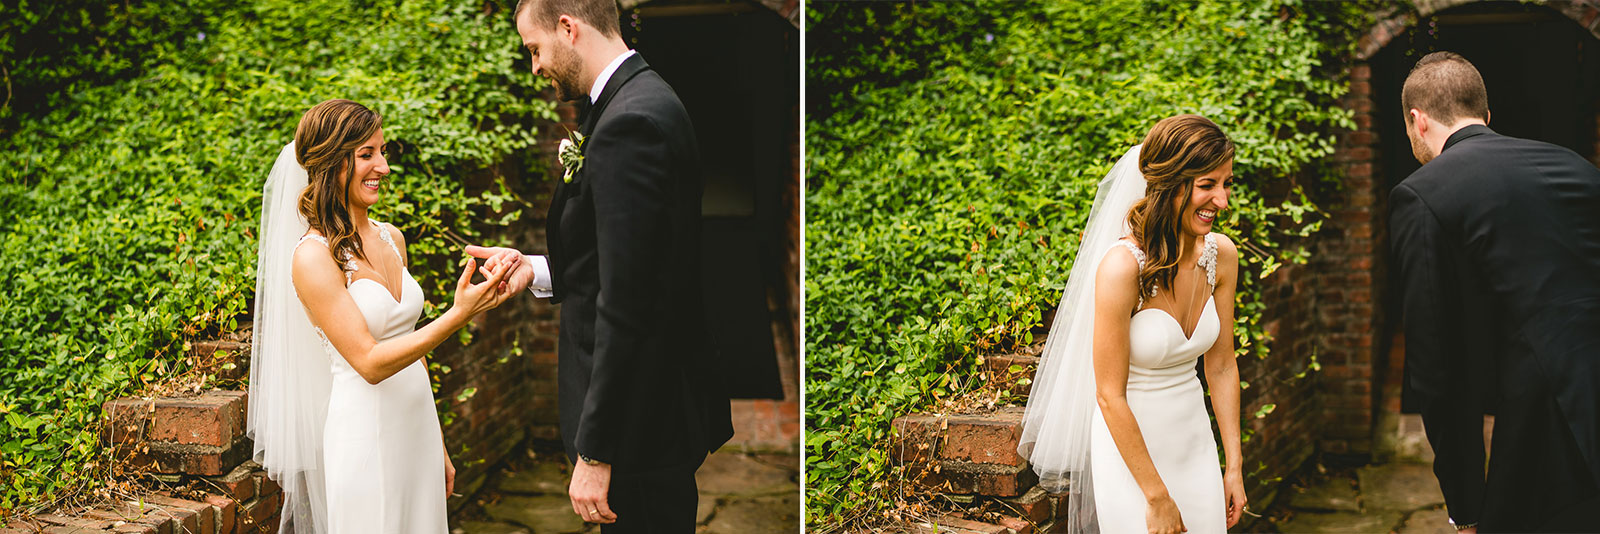 43 best cleveland wedding photos - Club of Hillbrook Wedding // Jenna + Ben